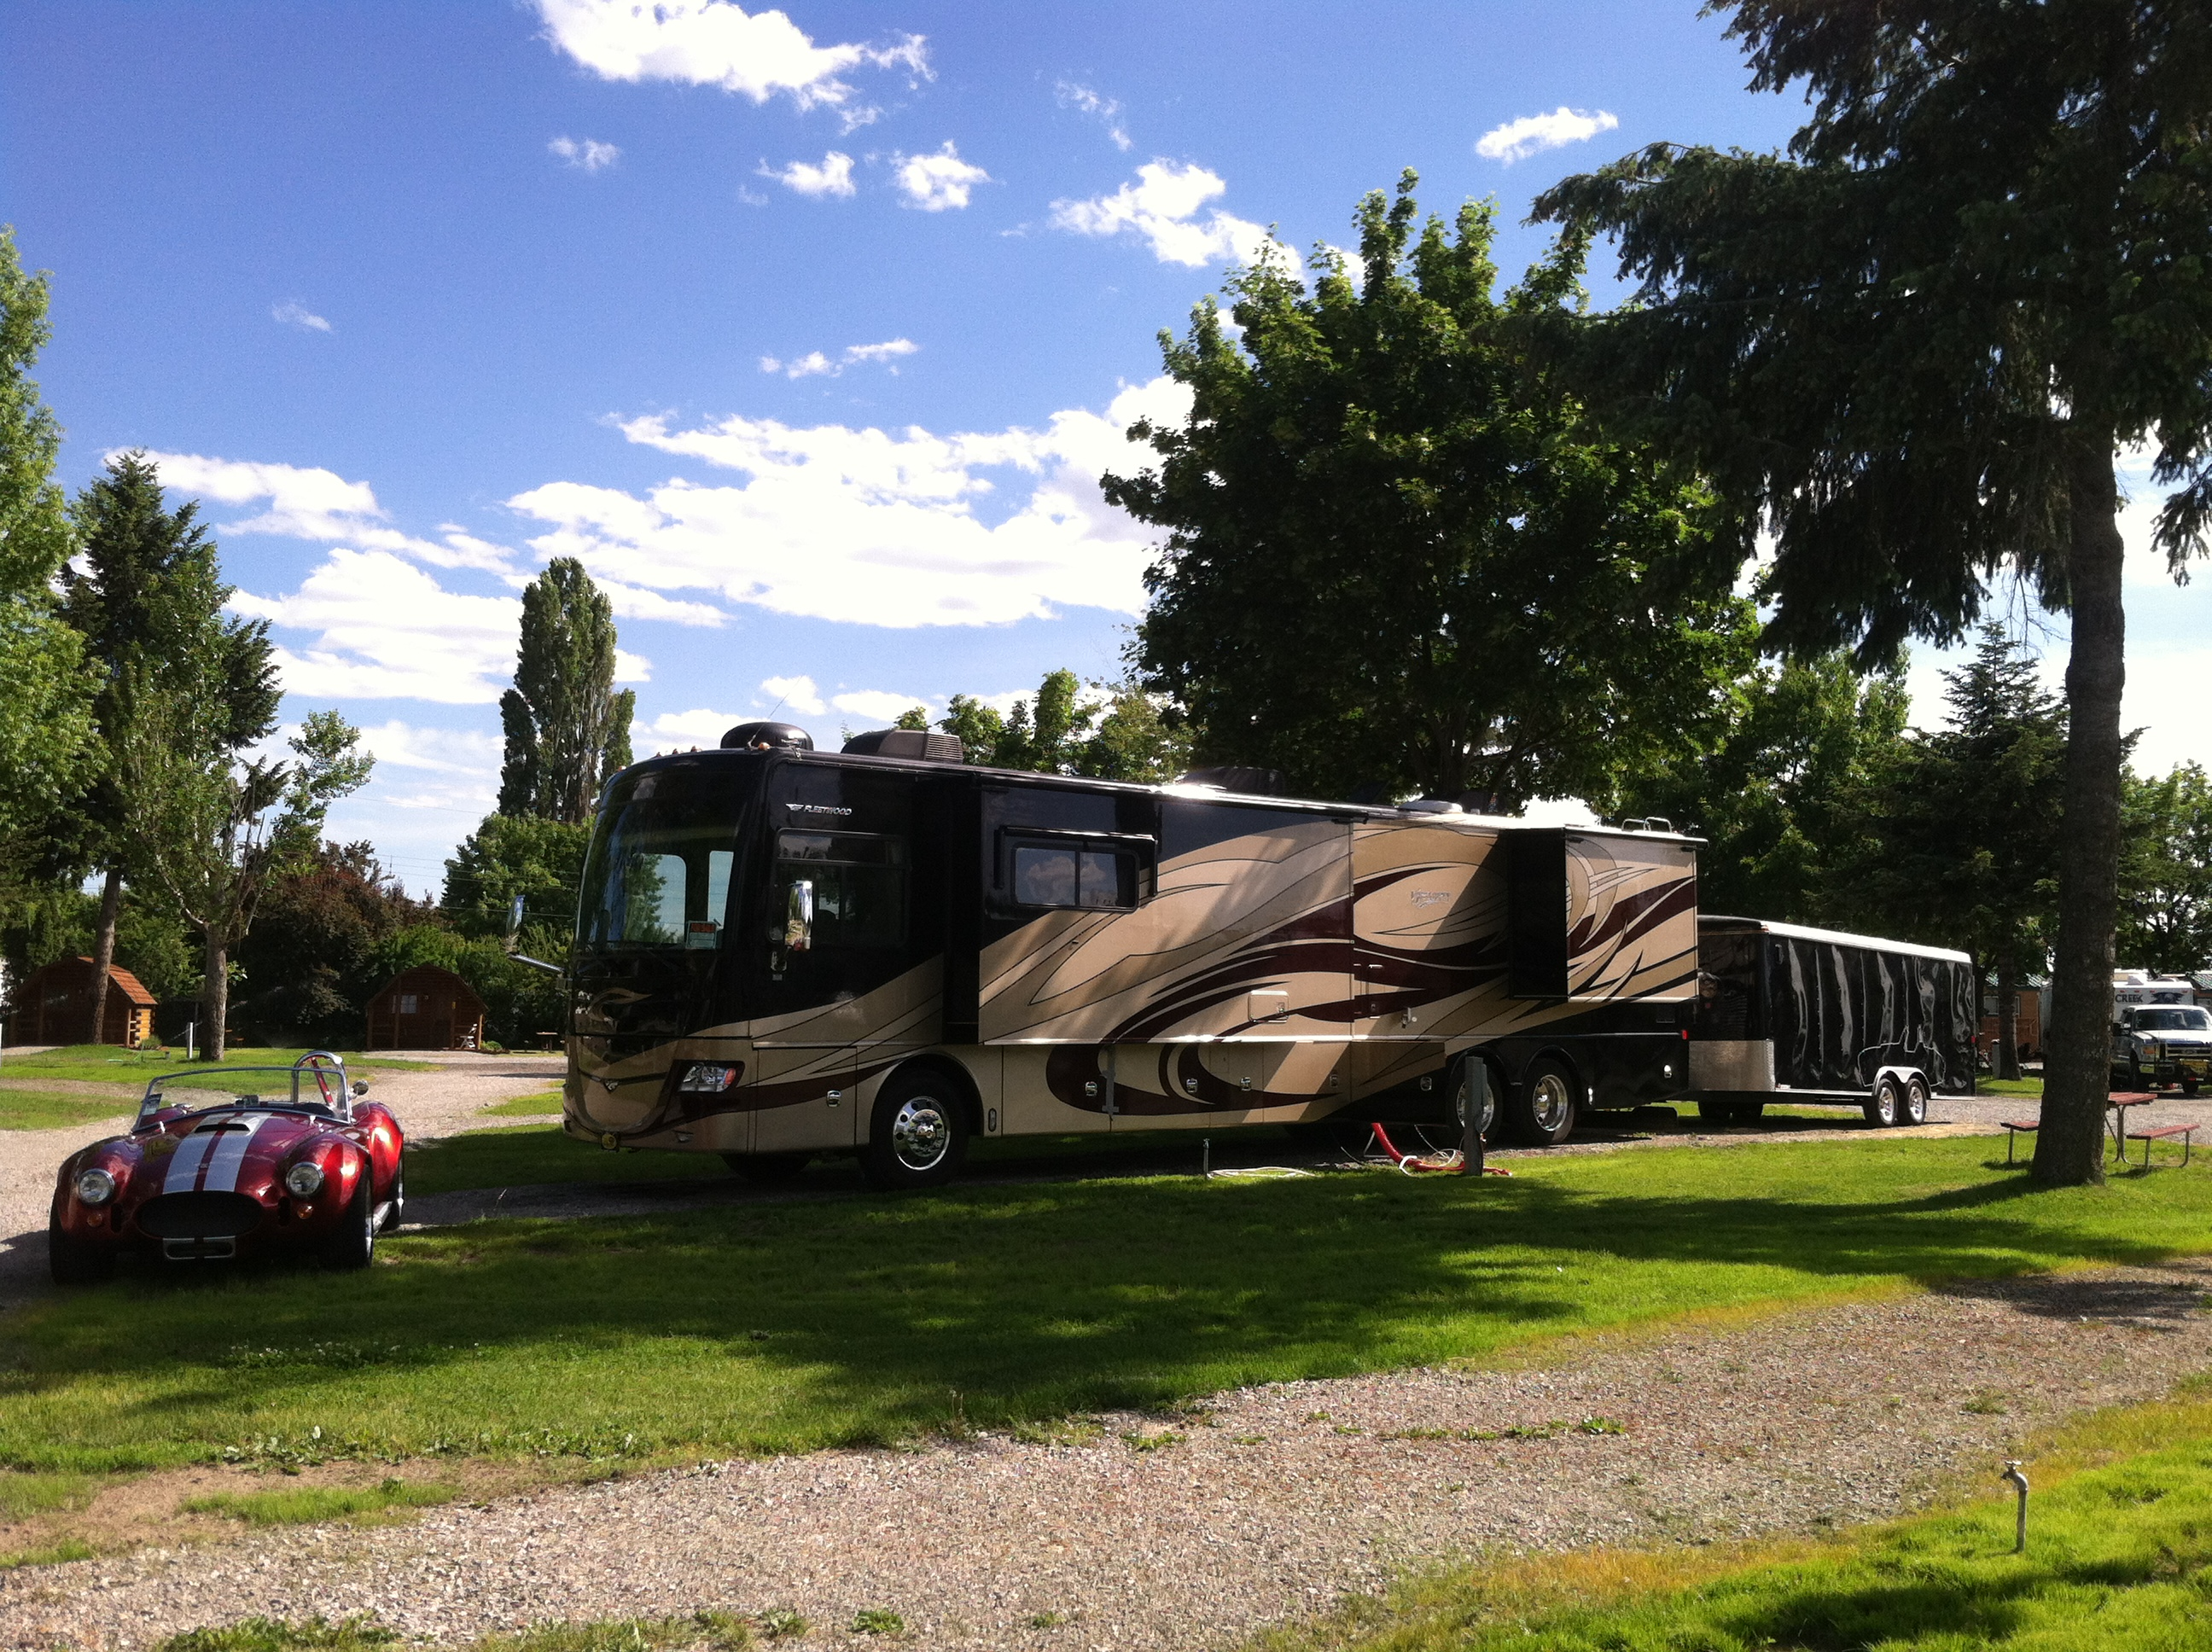 Spokane Valley Washington RV Camping Sites Spokane KOA